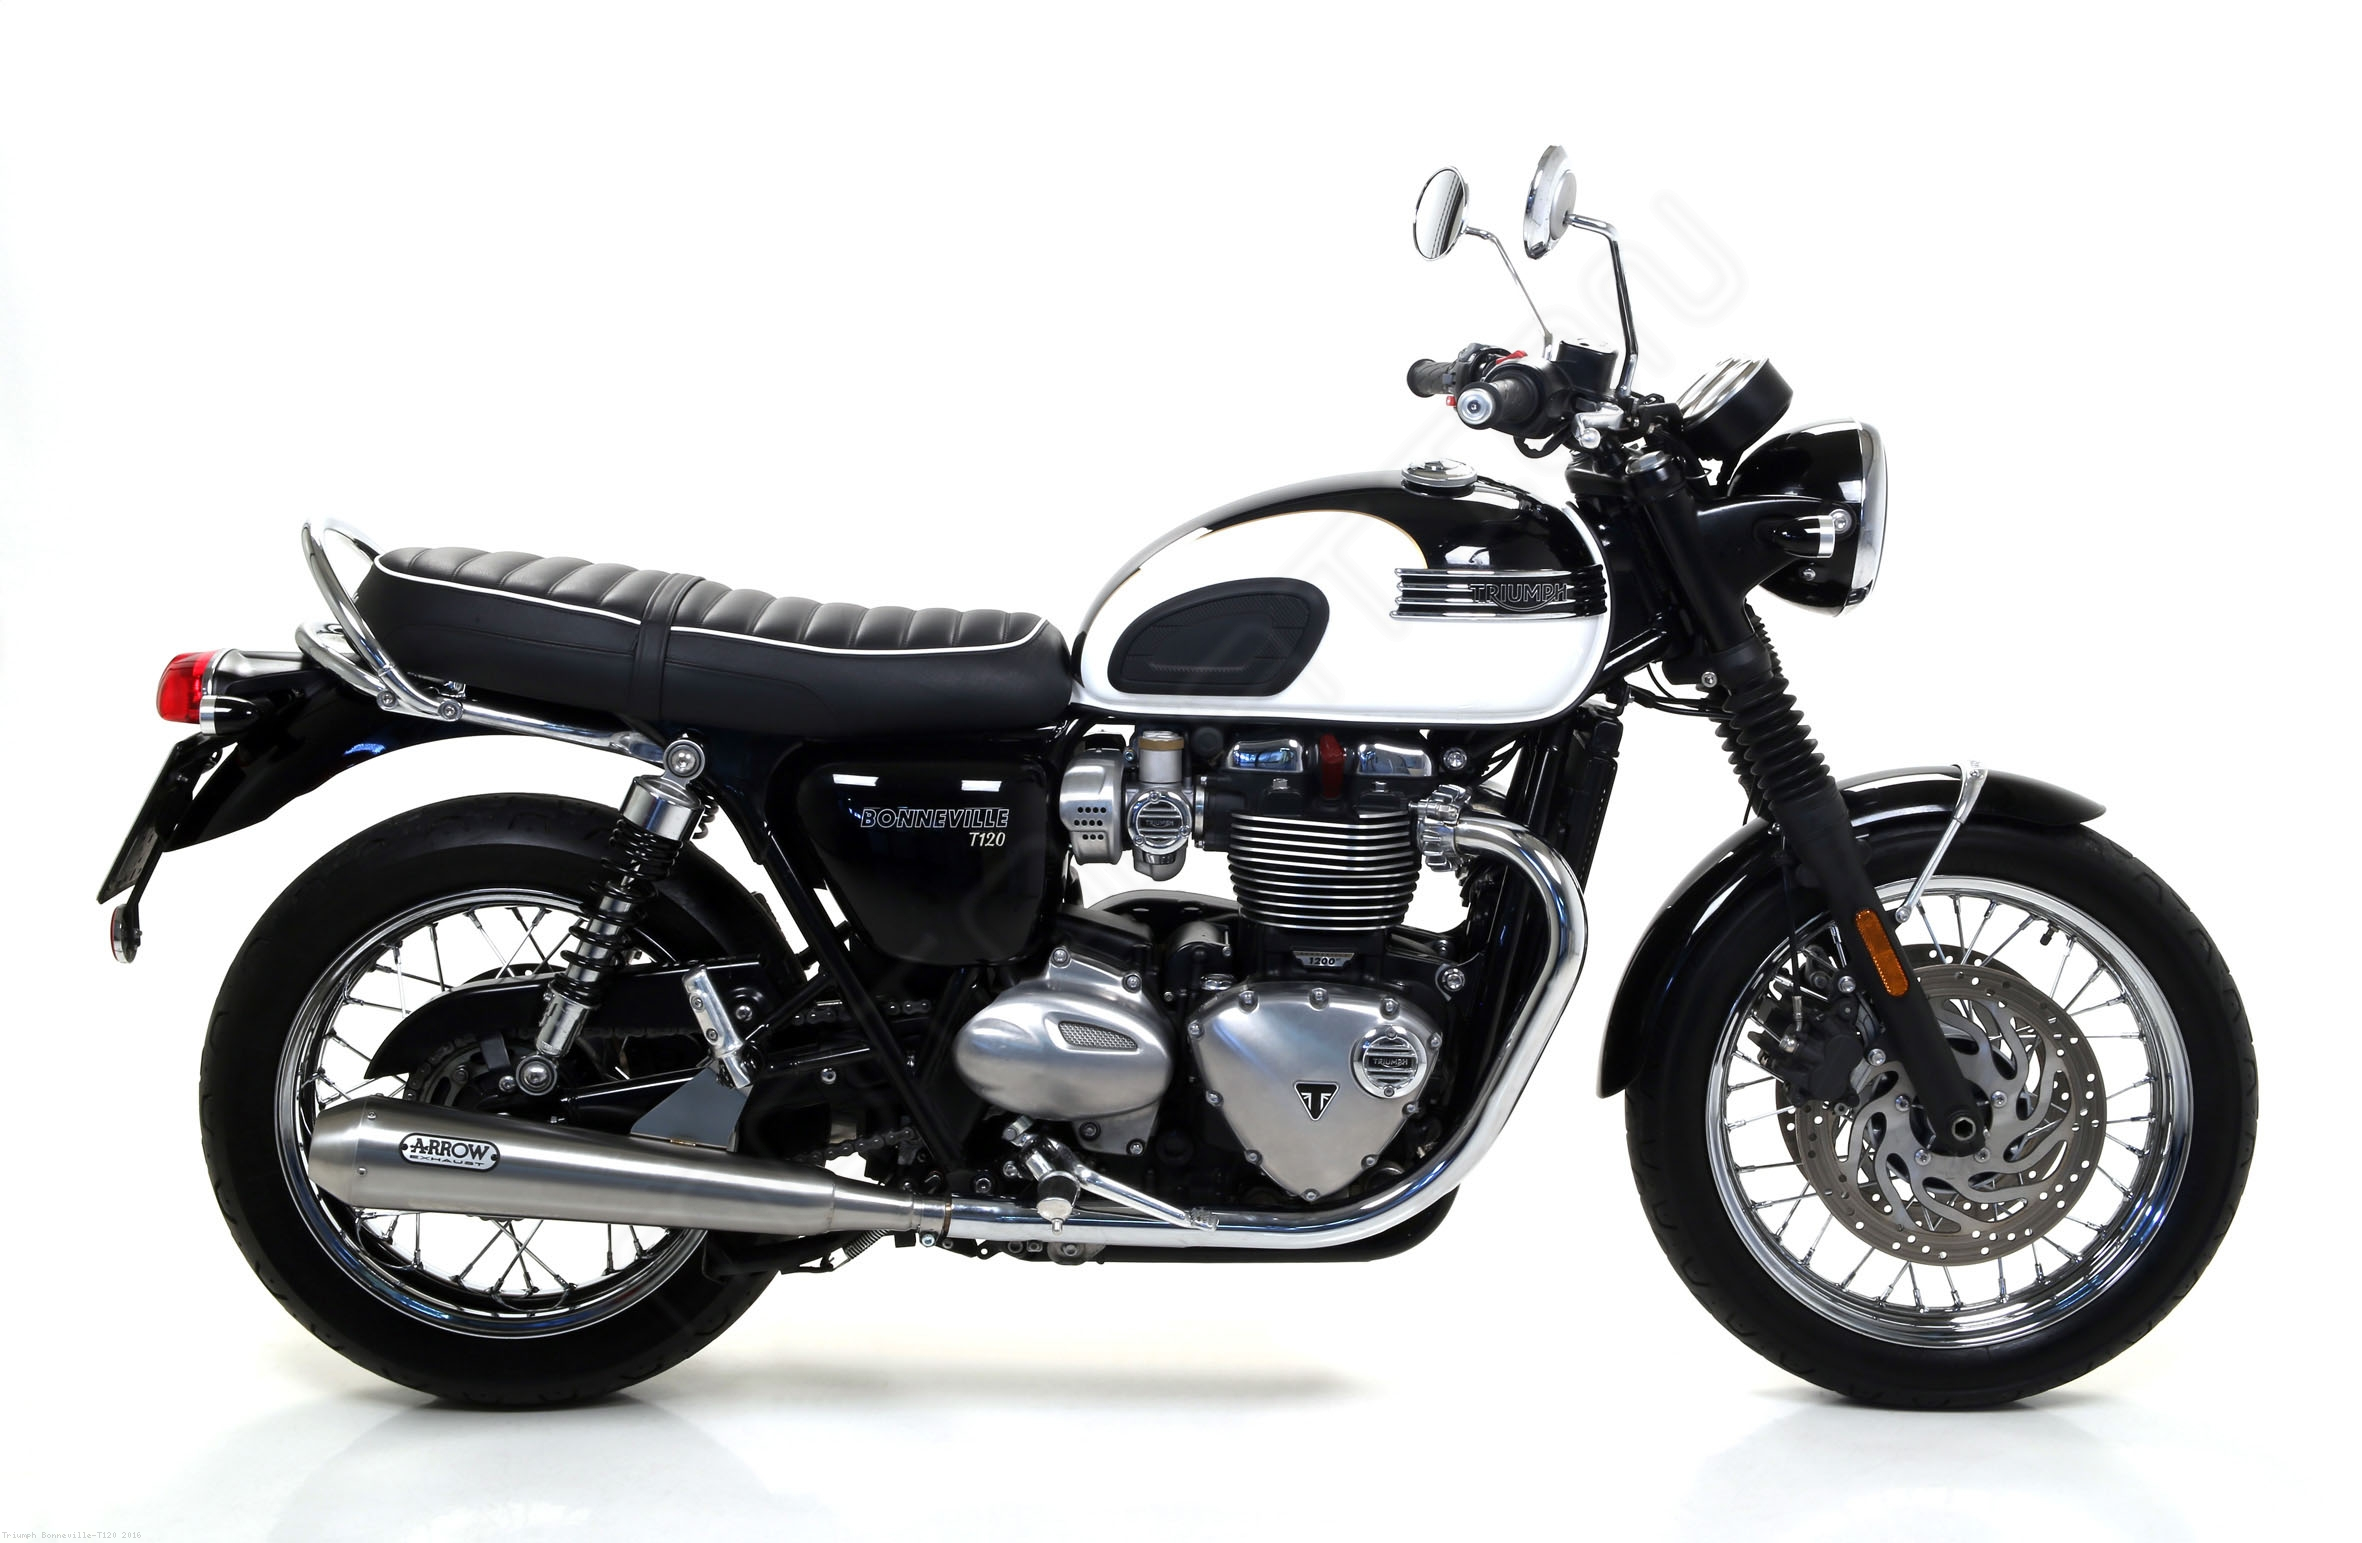 pro racing exhaust system by arrow triumph bonneville t120 2016 71853pri. Black Bedroom Furniture Sets. Home Design Ideas